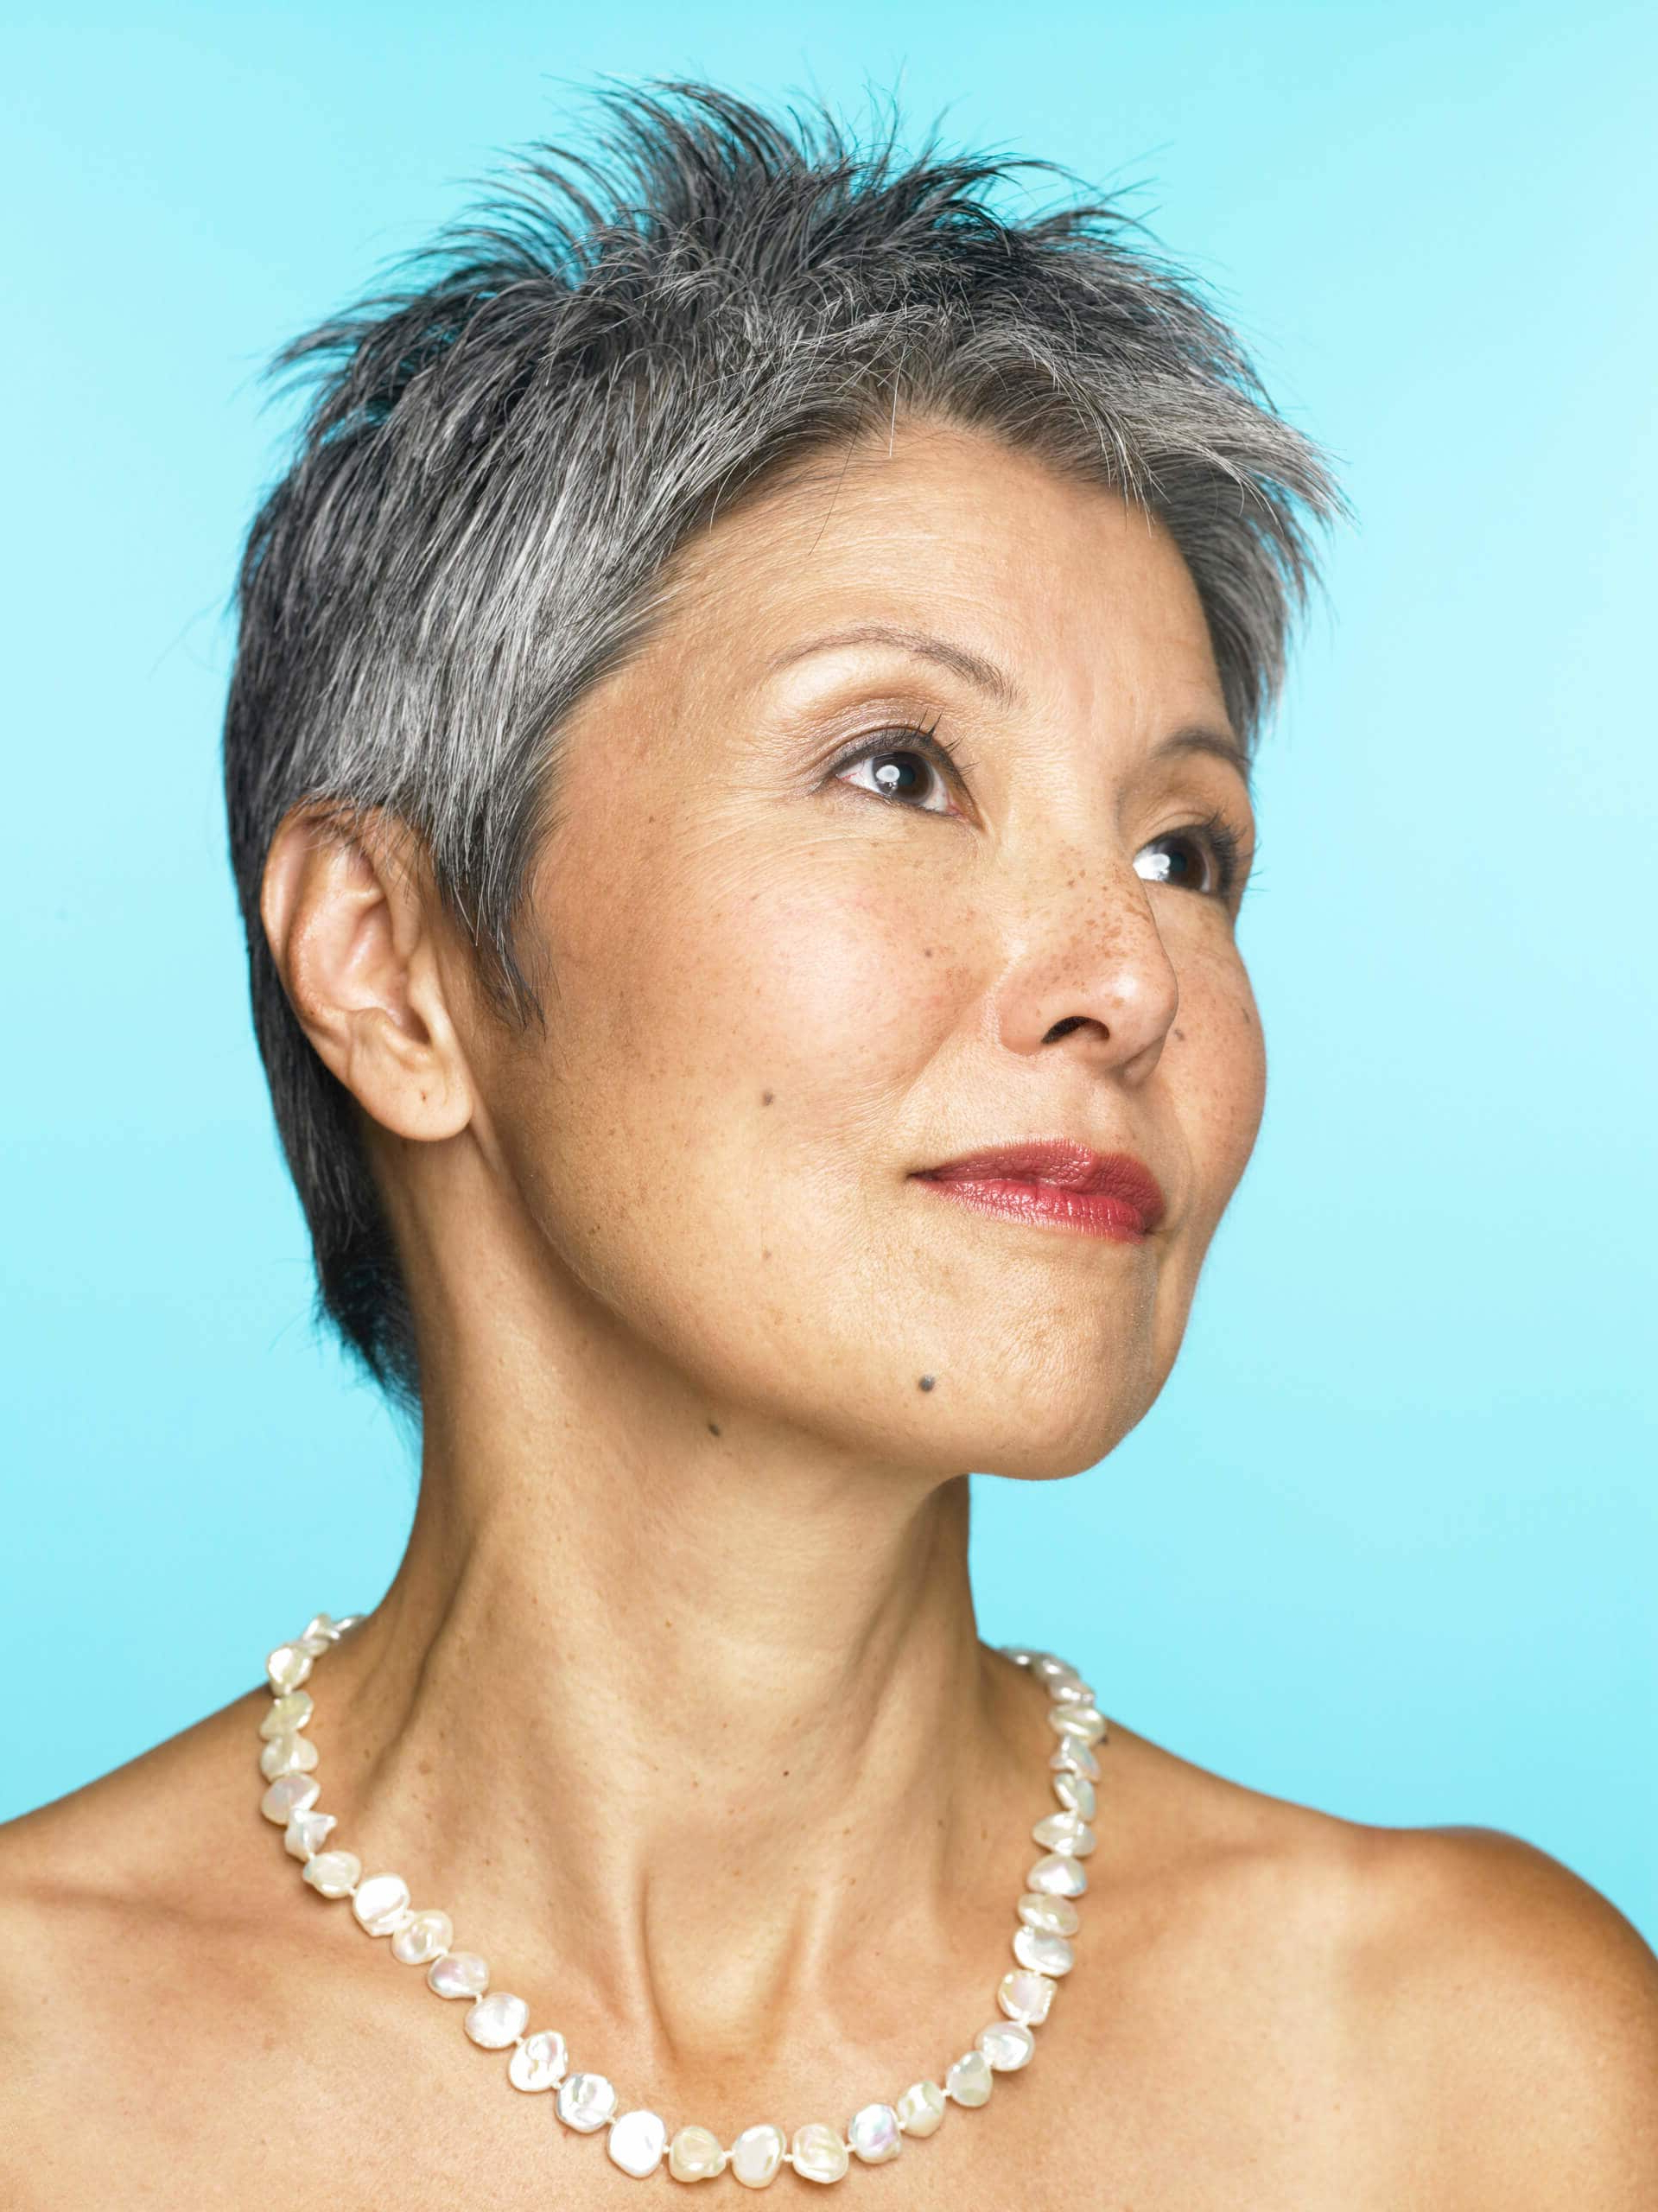 6 Chic And Classic Short Hairstyles For Older Women | All Things Hair Uk Regarding Short Hairstyles For Mature Woman (Gallery 24 of 25)